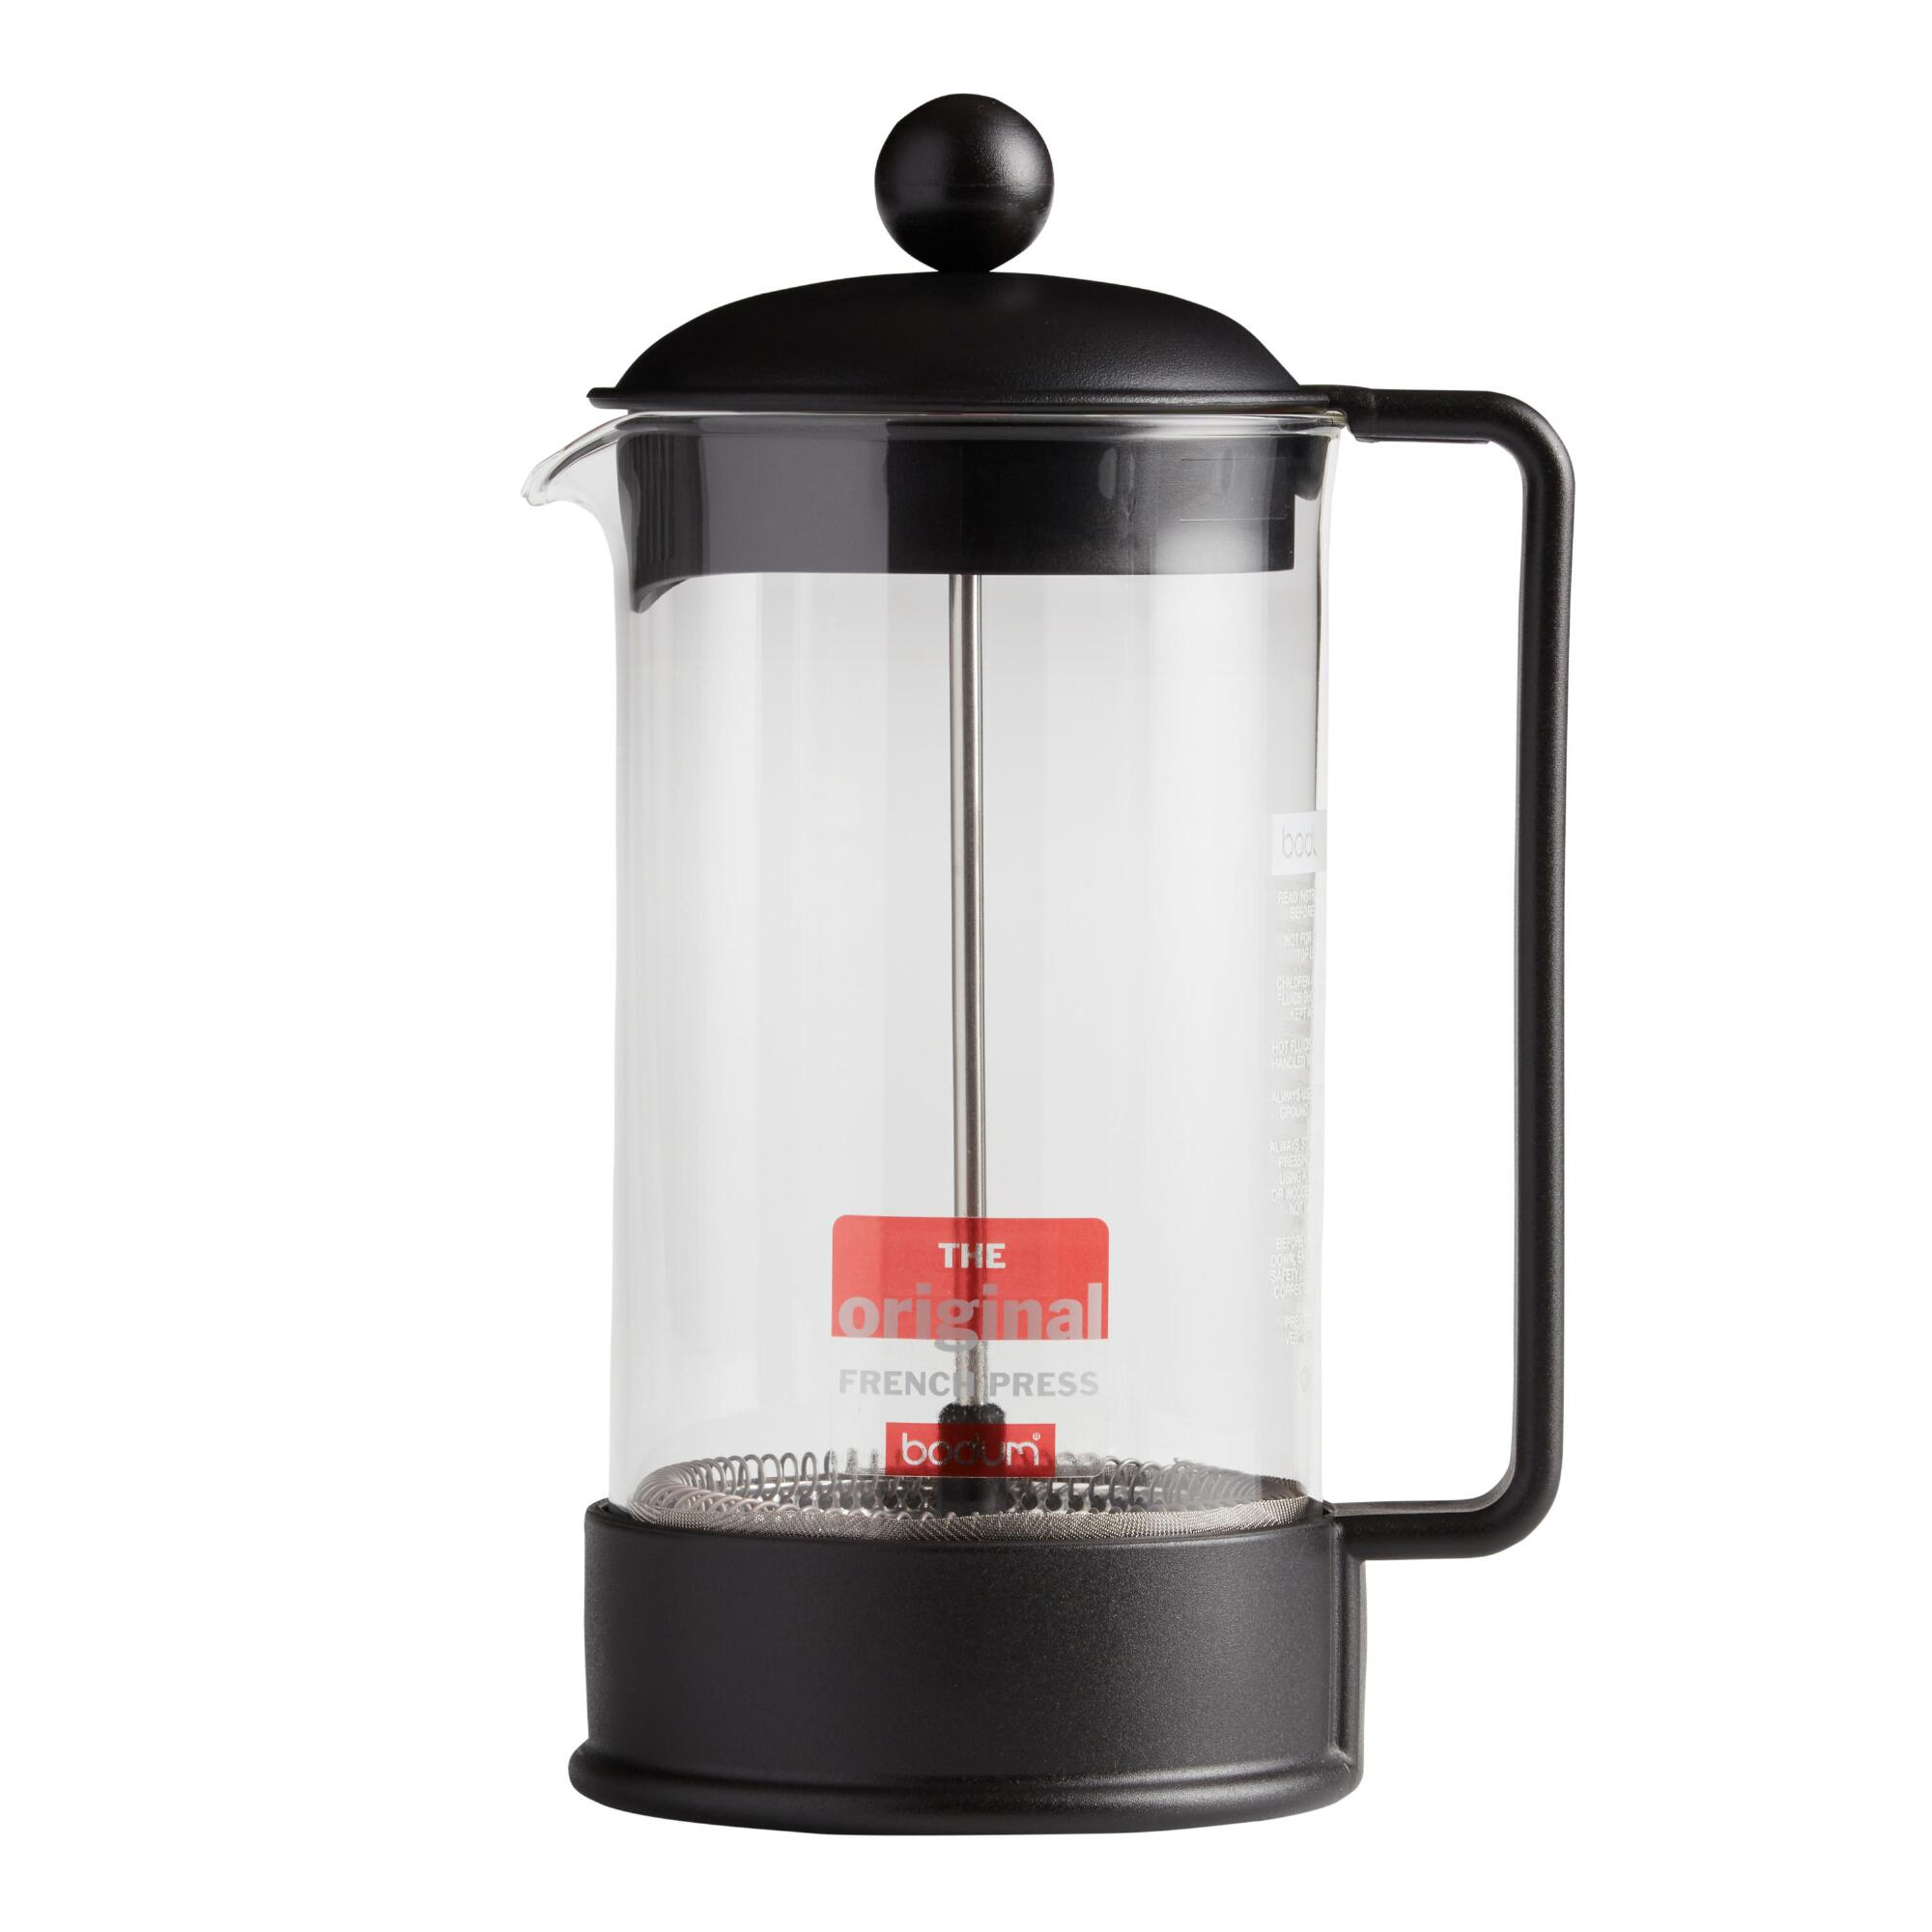 French Press Coffee Maker Images : Black Bodum Brazil French Press Coffee Maker World Market